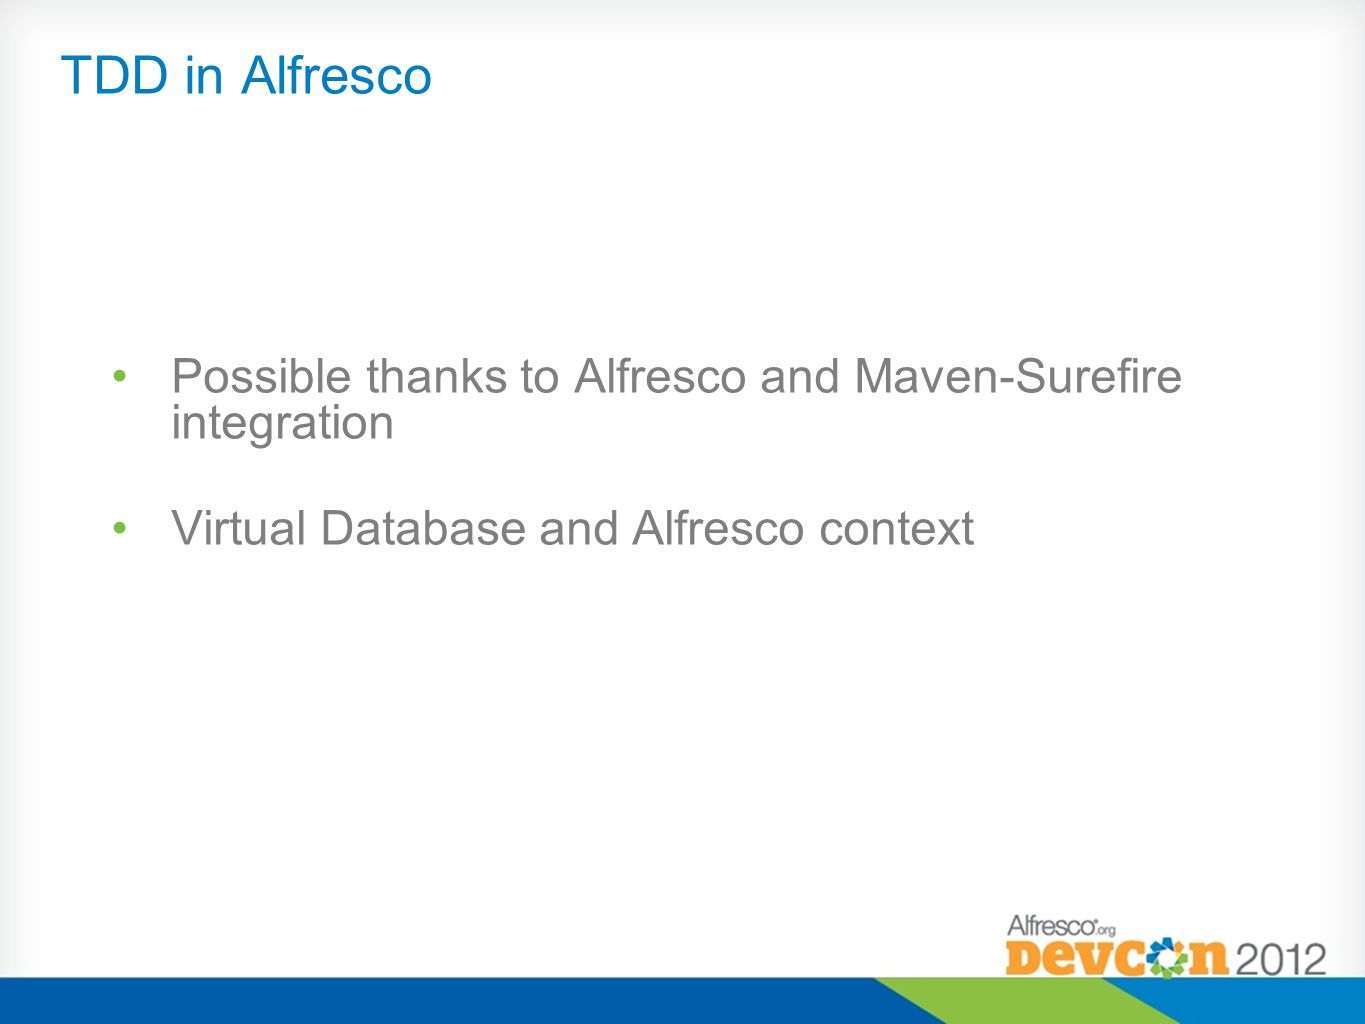 TDD in Alfresco Possible thanks to Alfresco and Maven-Surefire integration.